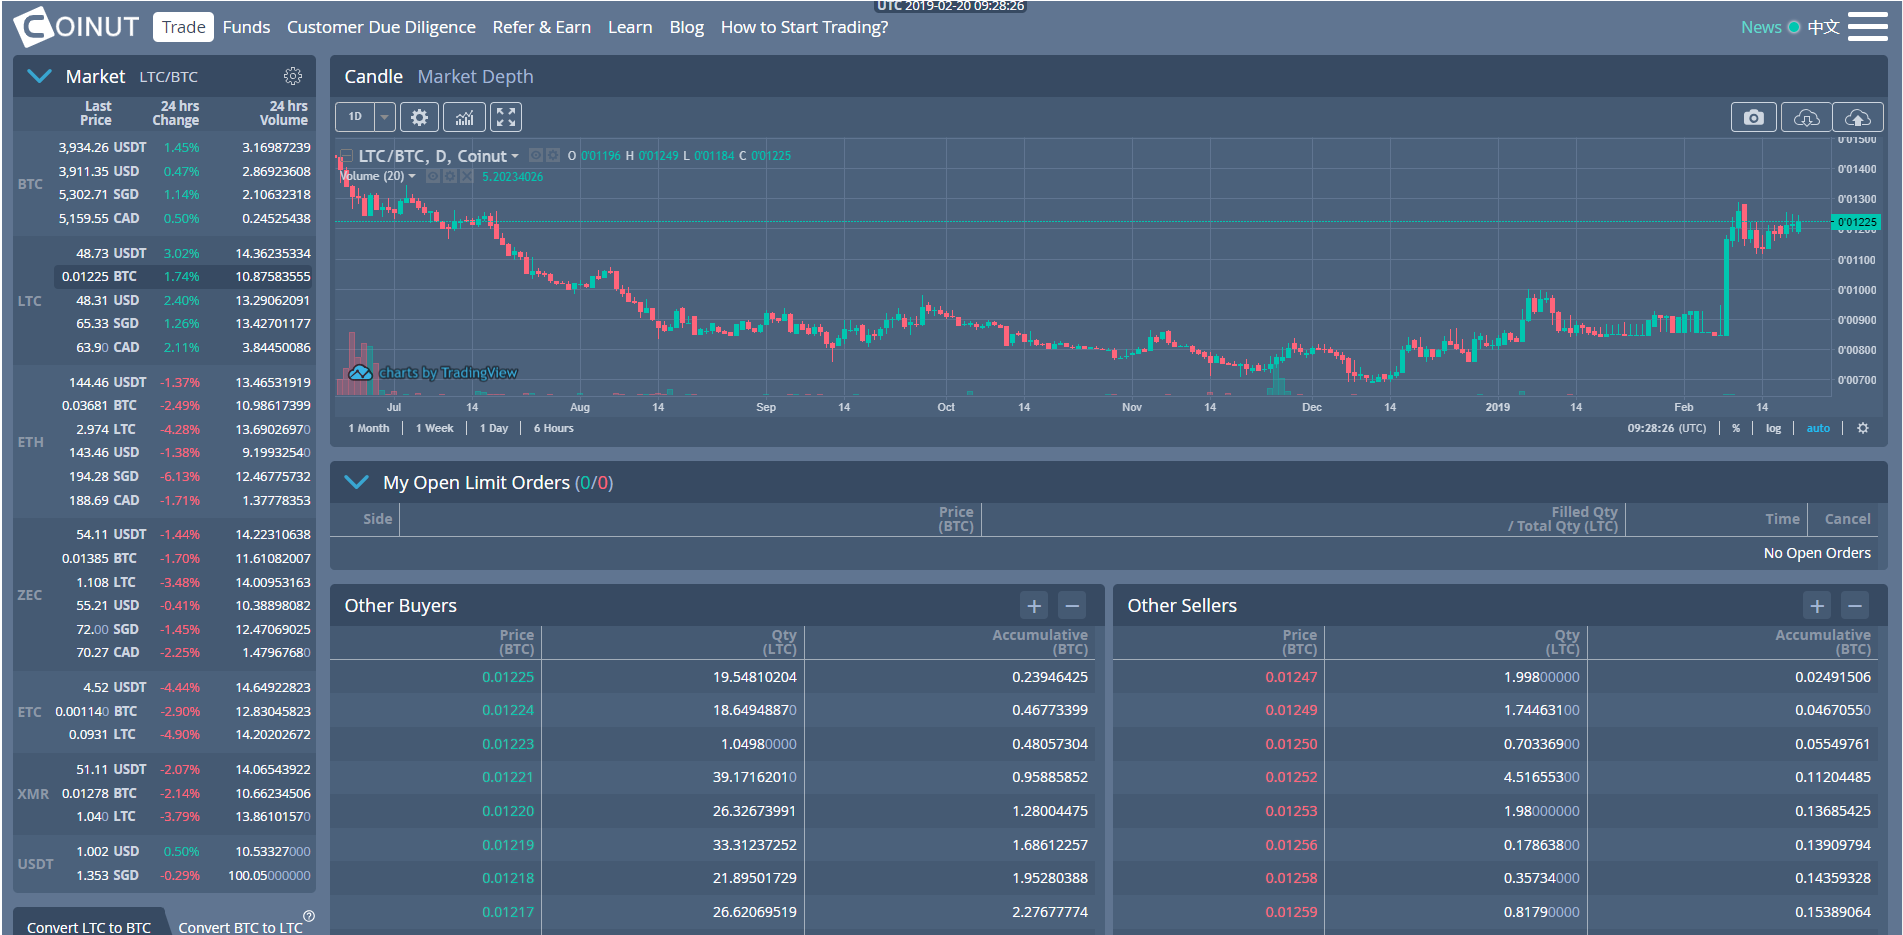 Coinut Trading View